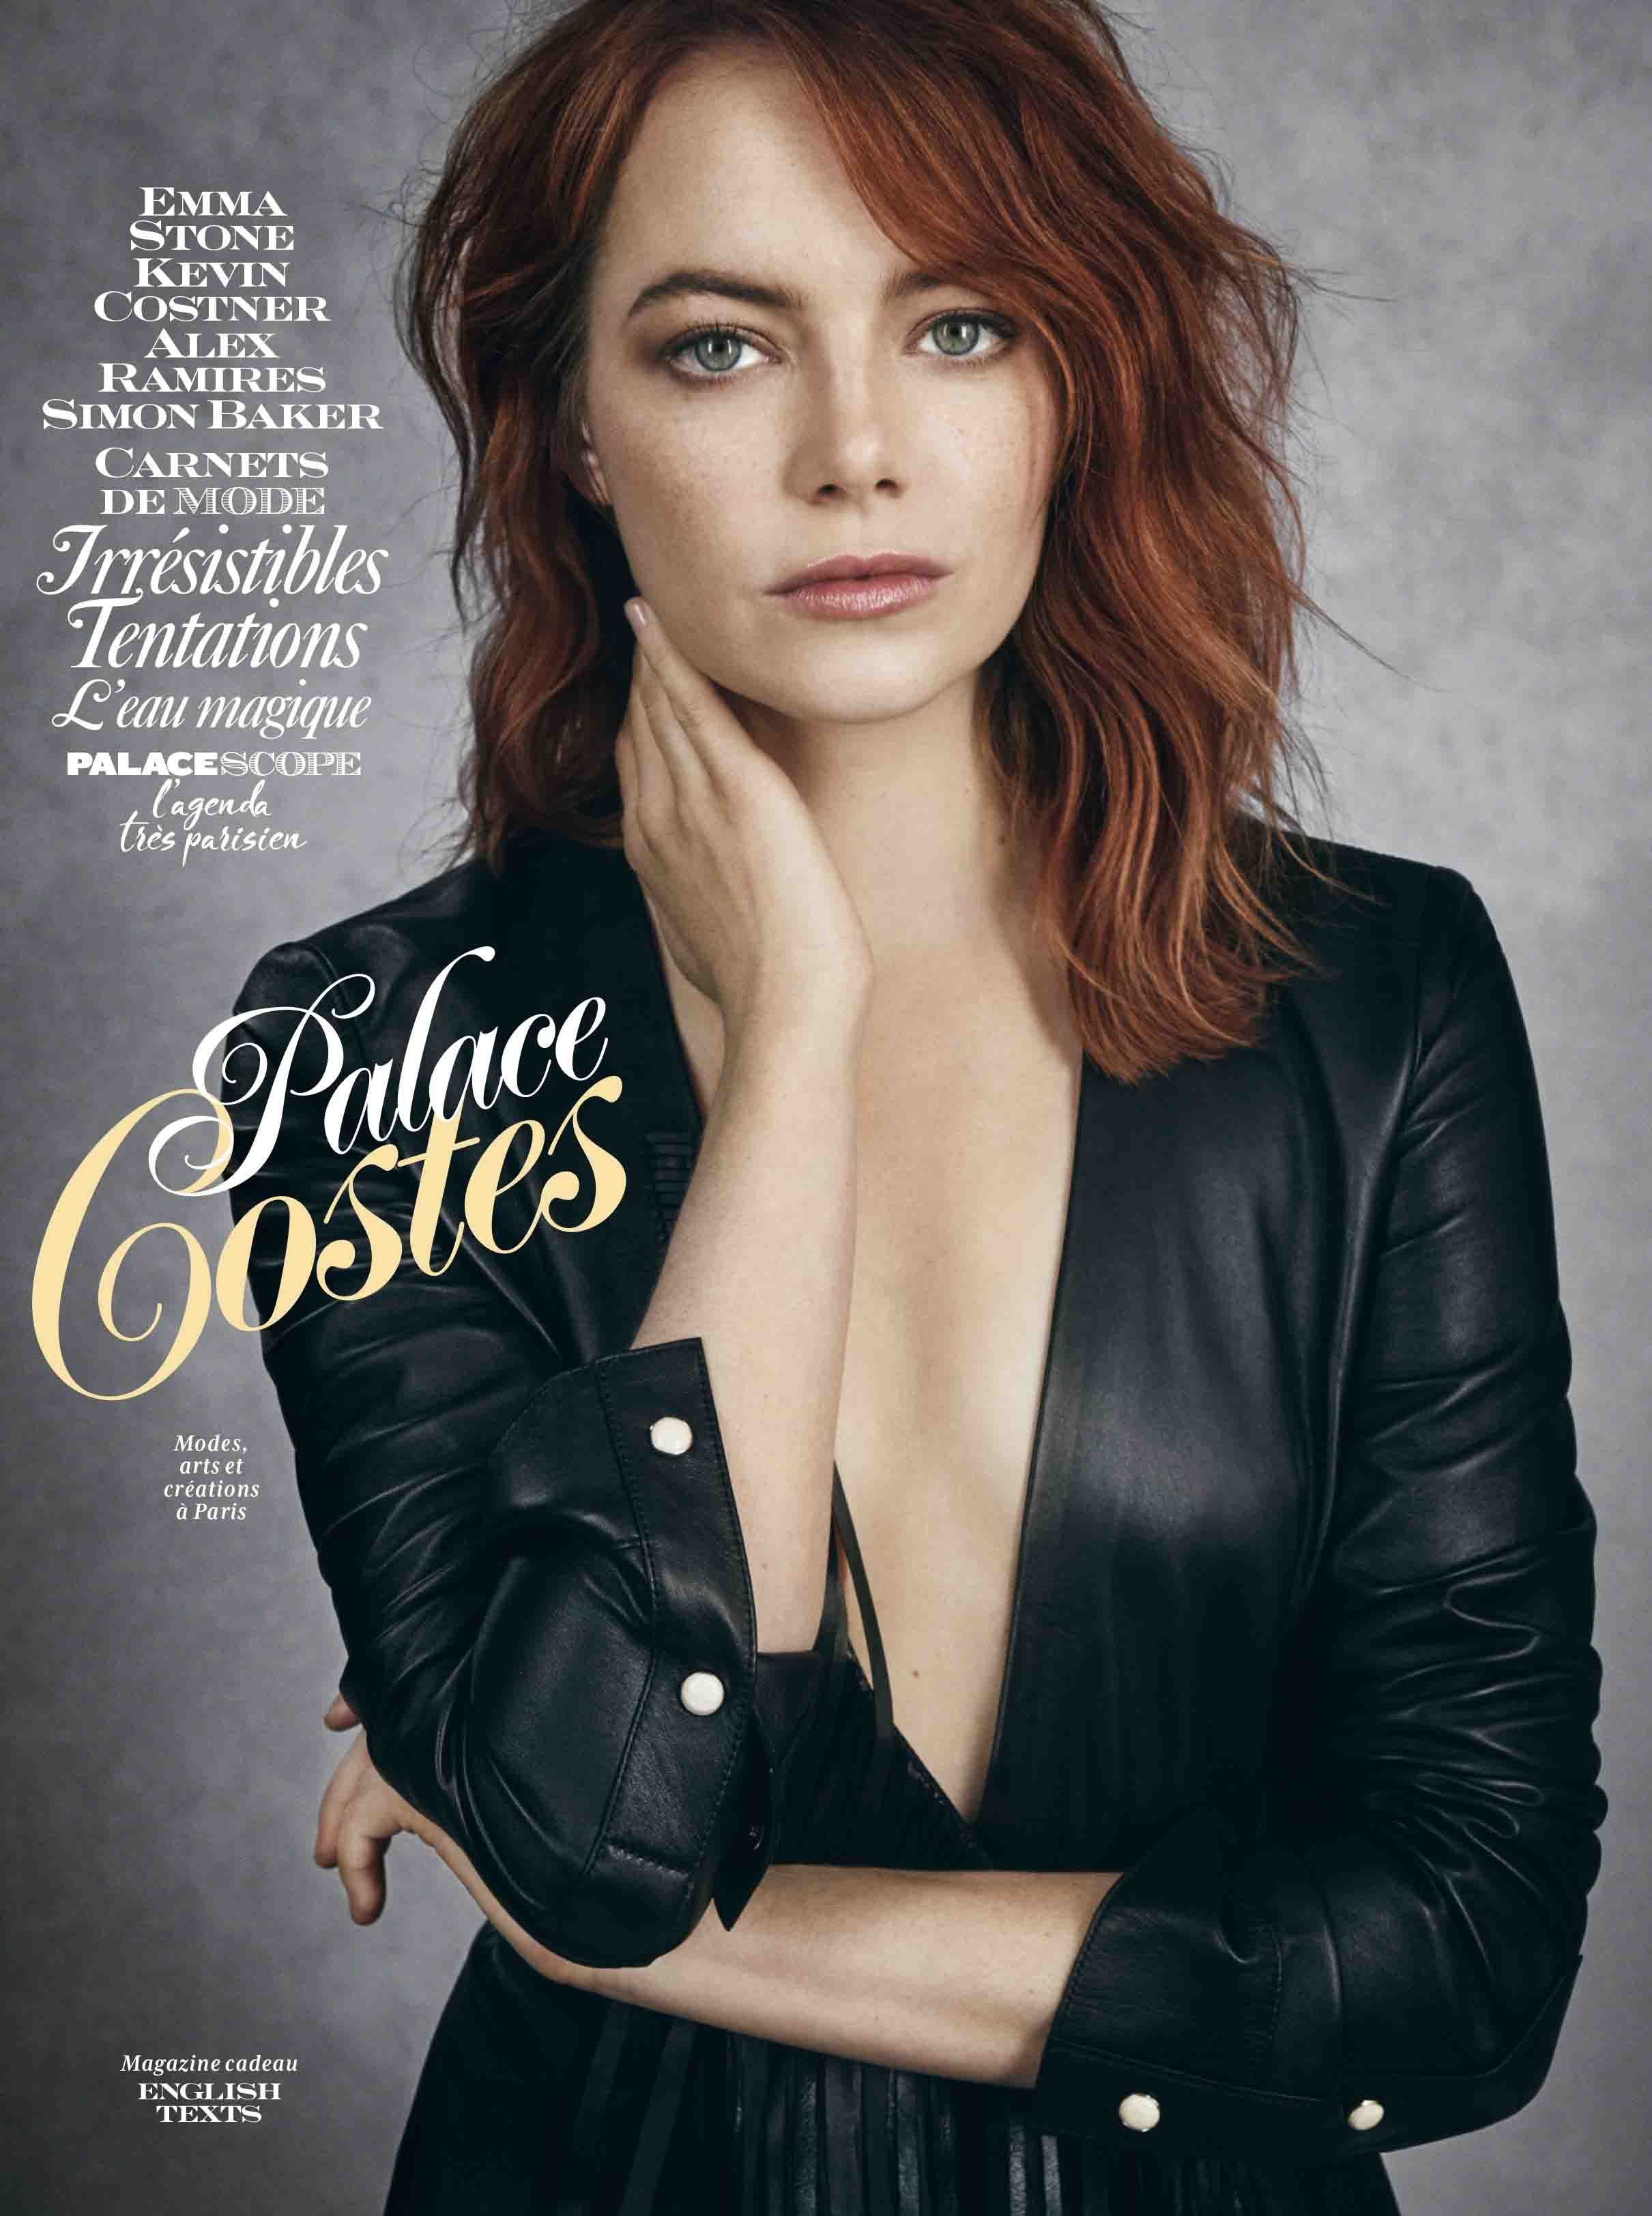 PalaceCostes Magazine Winter 2018 Cover.jpg